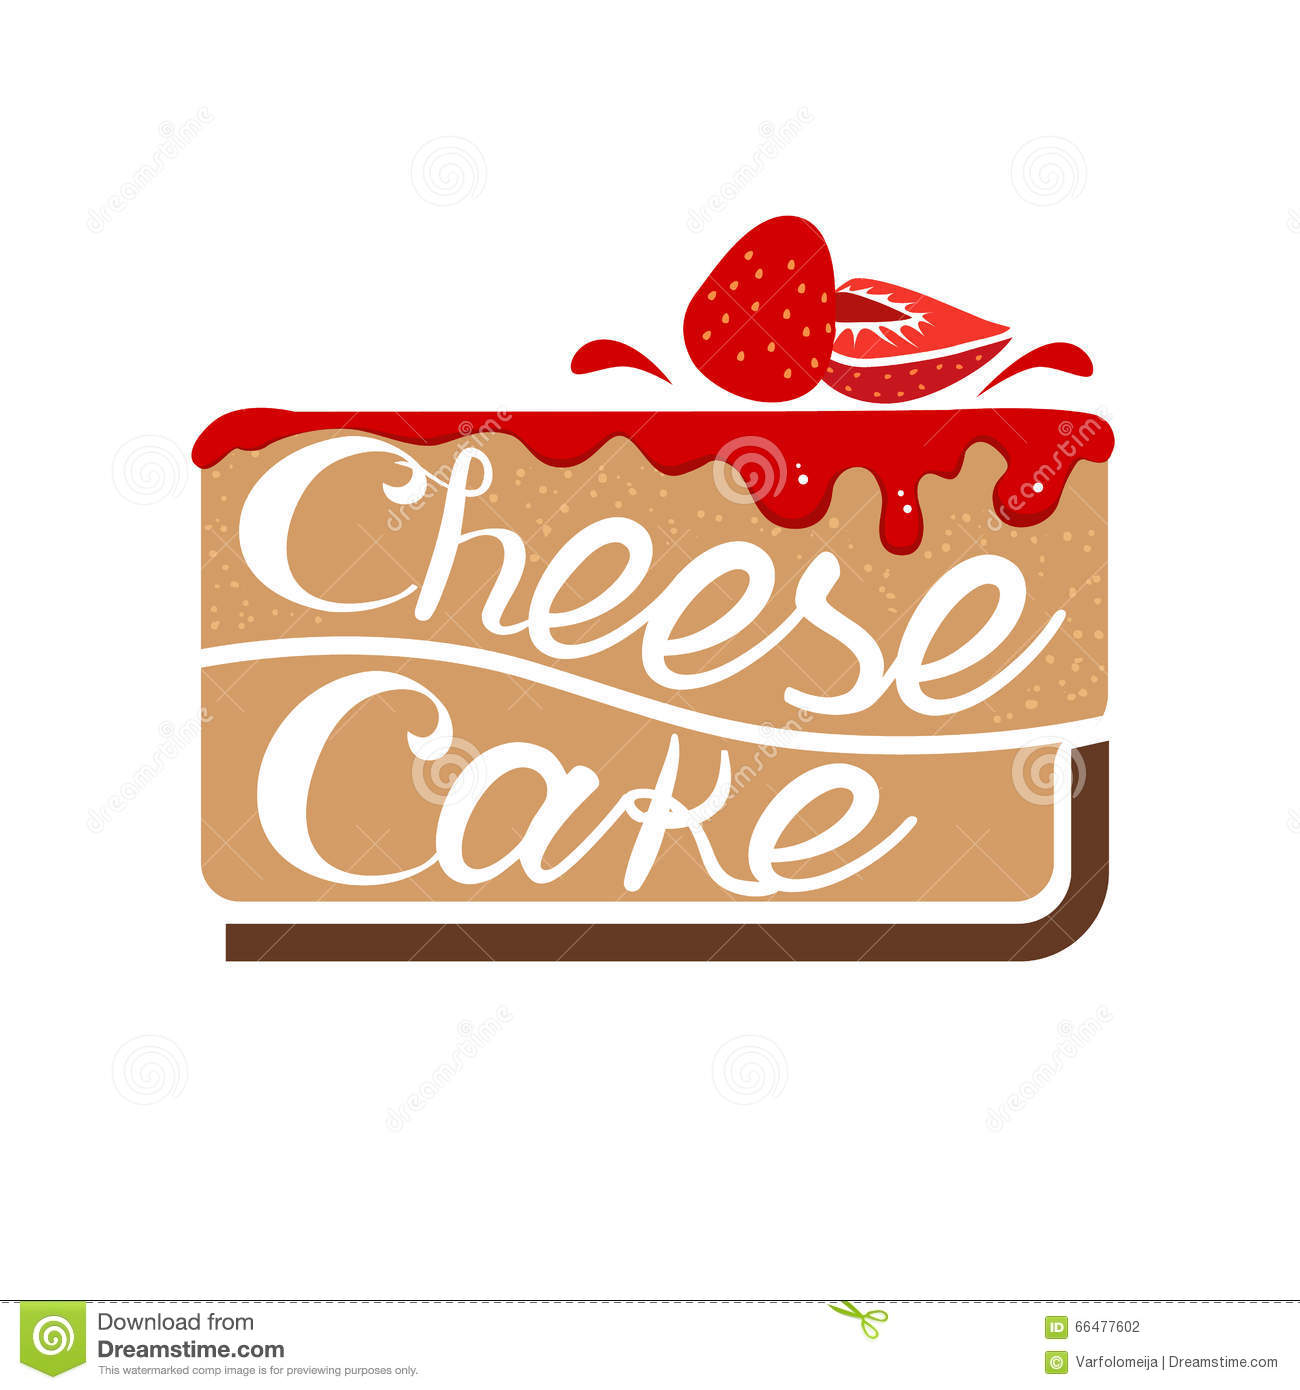 Cheesecake Images Clip Art : Cheesecake With Strawberry Jam. Vector Stock Vector ...